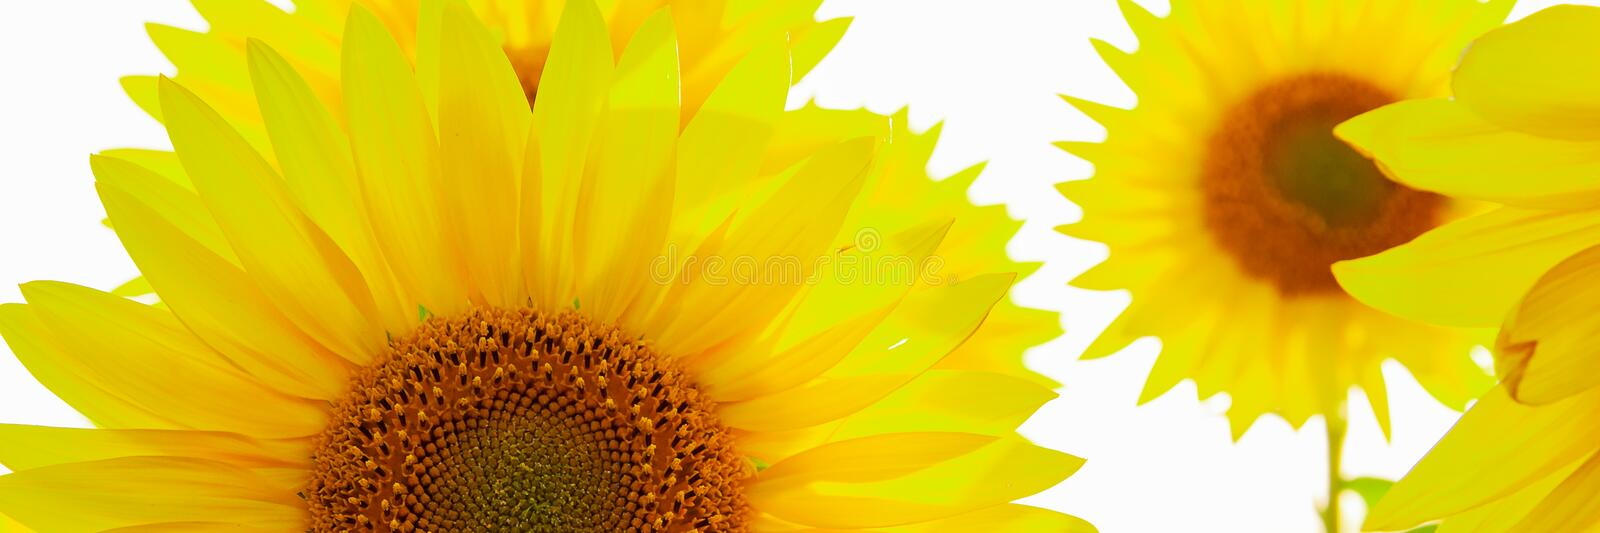 Sunflower natural background. Sunflower blooming. Agriculture field royalty free stock photos